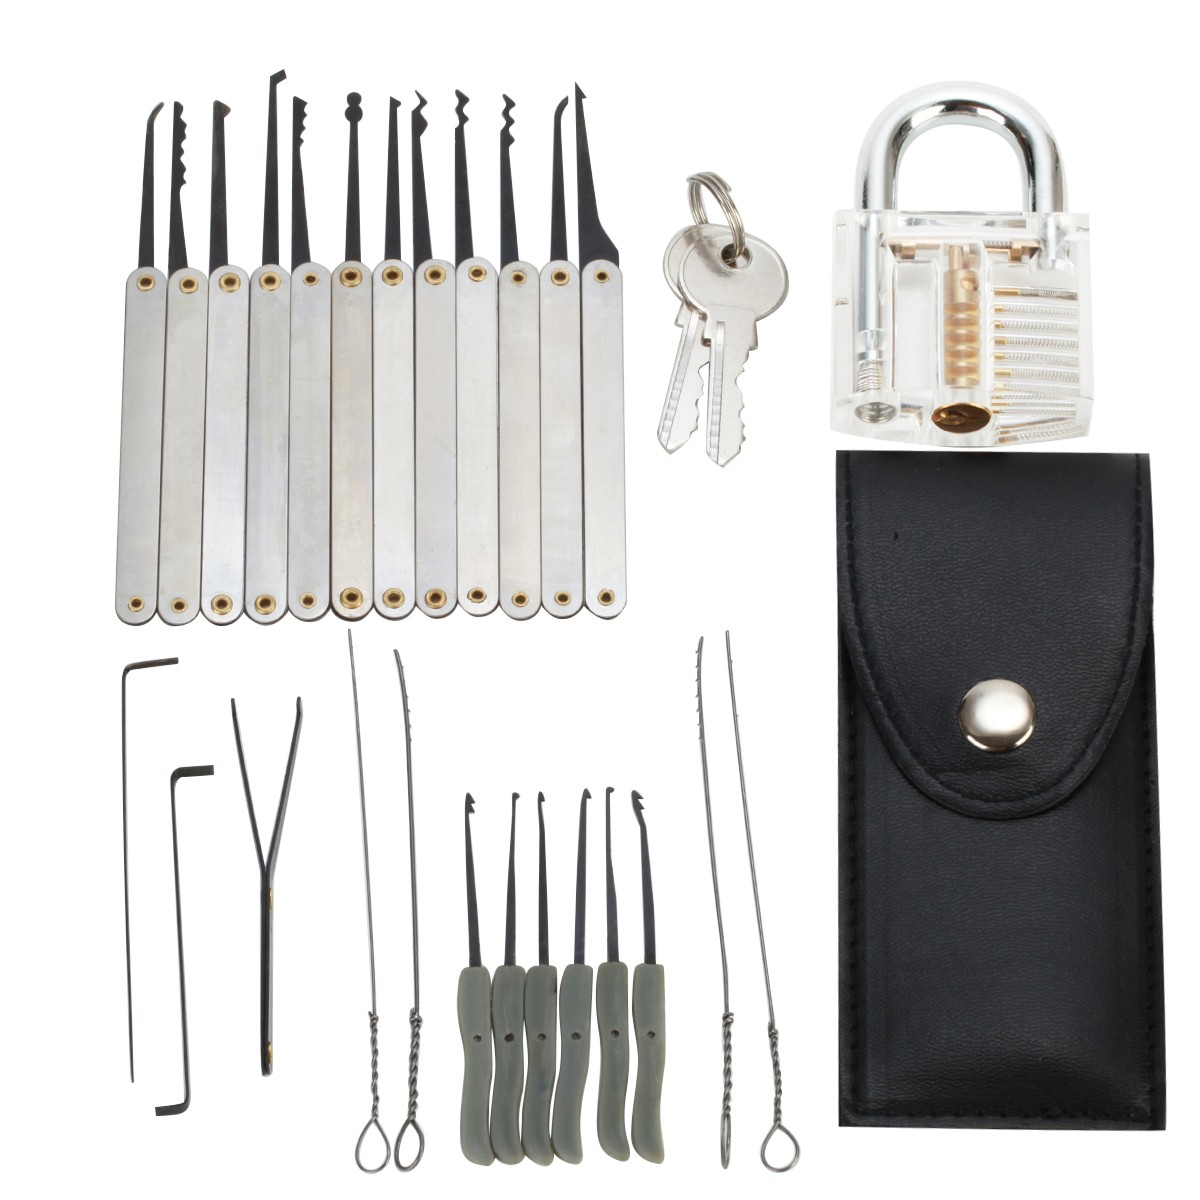 15pcs lockpicking set mit 2 schl ssel schlie zylinder vorh ngeschloss kaufen. Black Bedroom Furniture Sets. Home Design Ideas